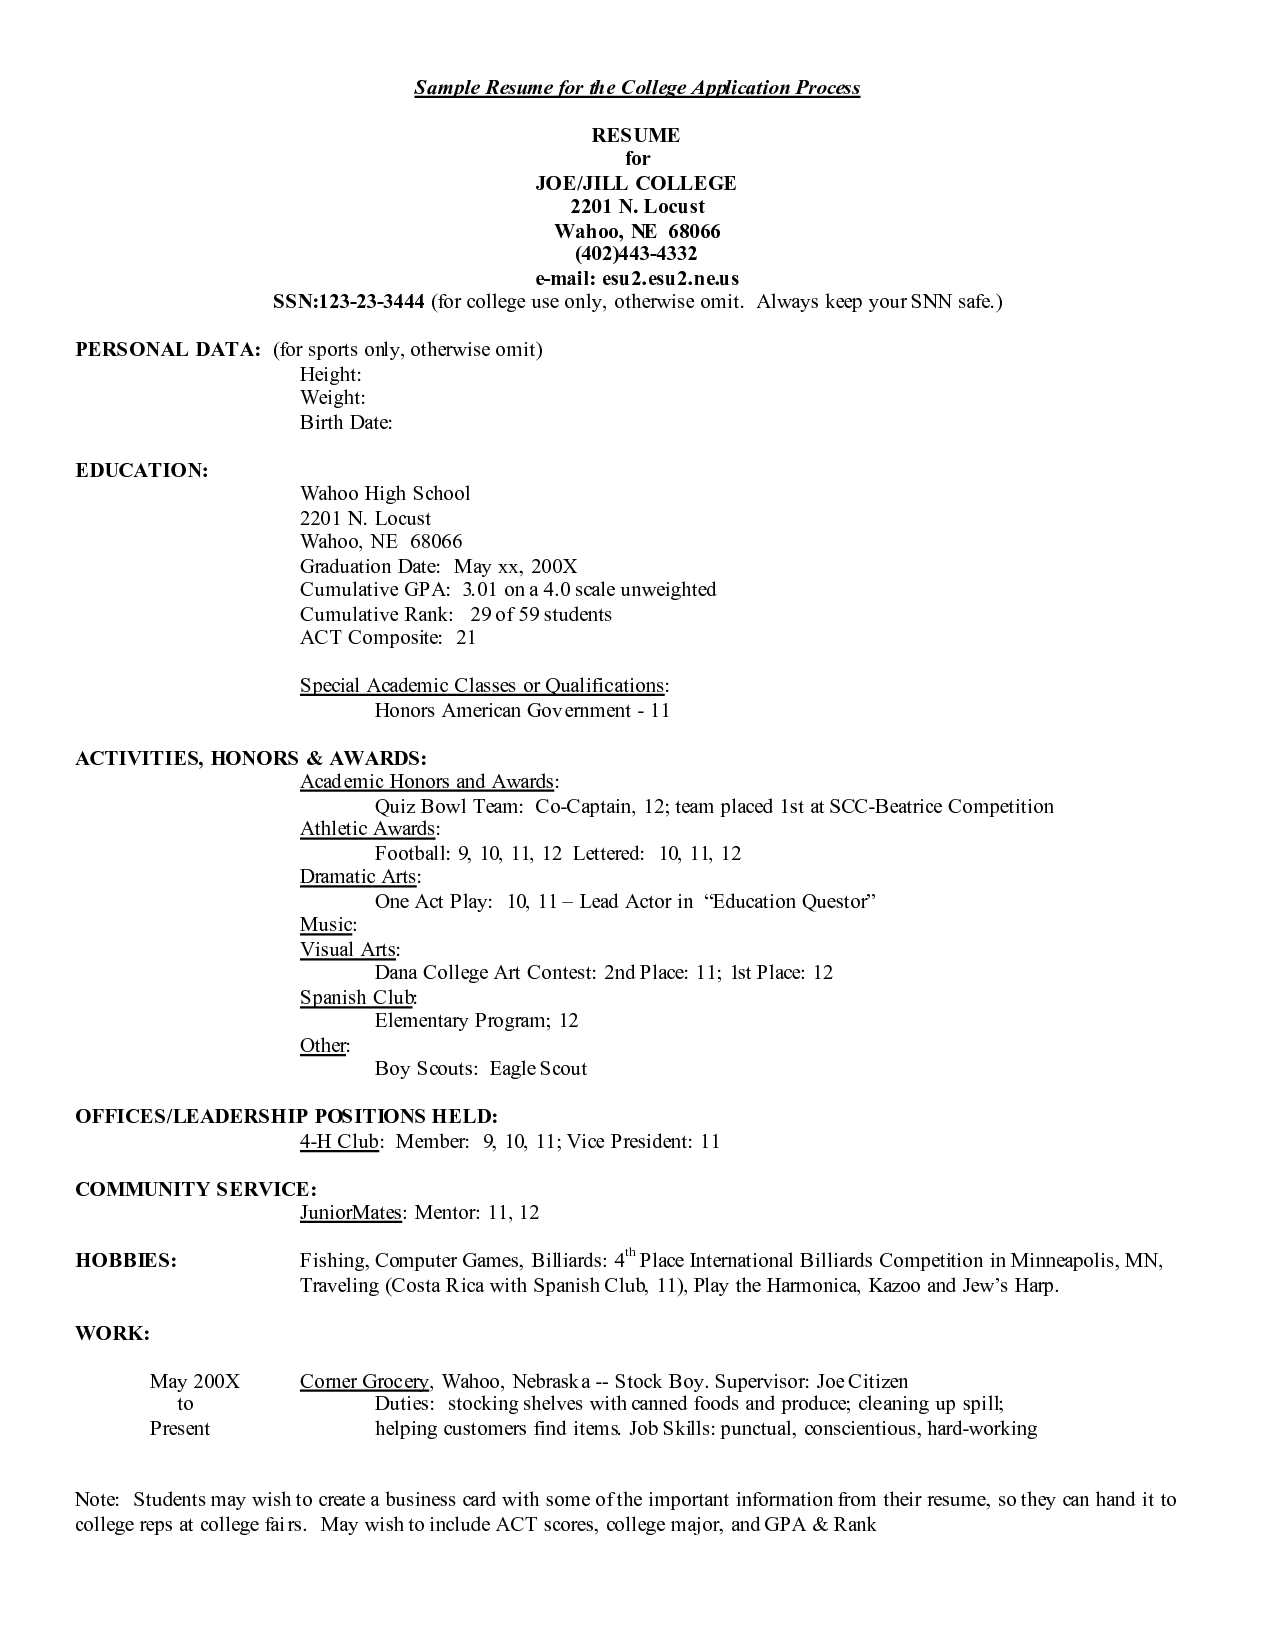 sample student resume for college application liability release